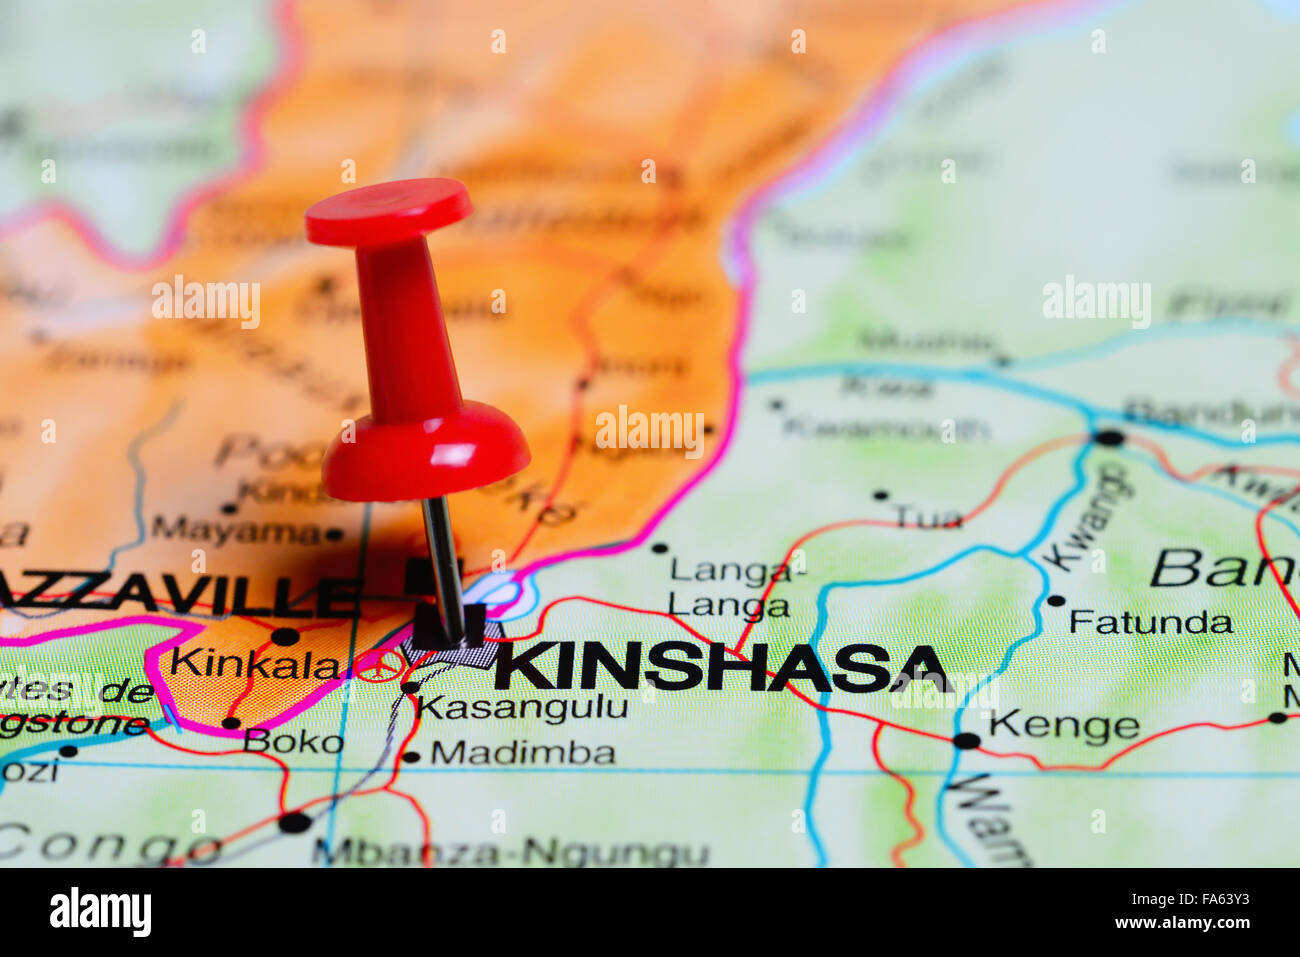 Kinshasa pinned on a map of Africa Stock Photo: 92333223 - Alamy on dar es salaam on map of africa, mogadishu on map of africa, tripoli on map of africa, maputo on map of africa, jerusalem on map of africa, brazzaville on map of africa, lagos on map of africa, democratic republic of the congo on map of africa, khartoum on map of africa, lusaka on map of africa, kigali on map of africa, addis ababa on map of africa, walvis bay on map of africa, victoria falls on map of africa, africa on map of africa, central african republic on map of africa, white nile on map of africa, alexandria on map of africa, timbuktu on map of africa, nairobi on map of africa,